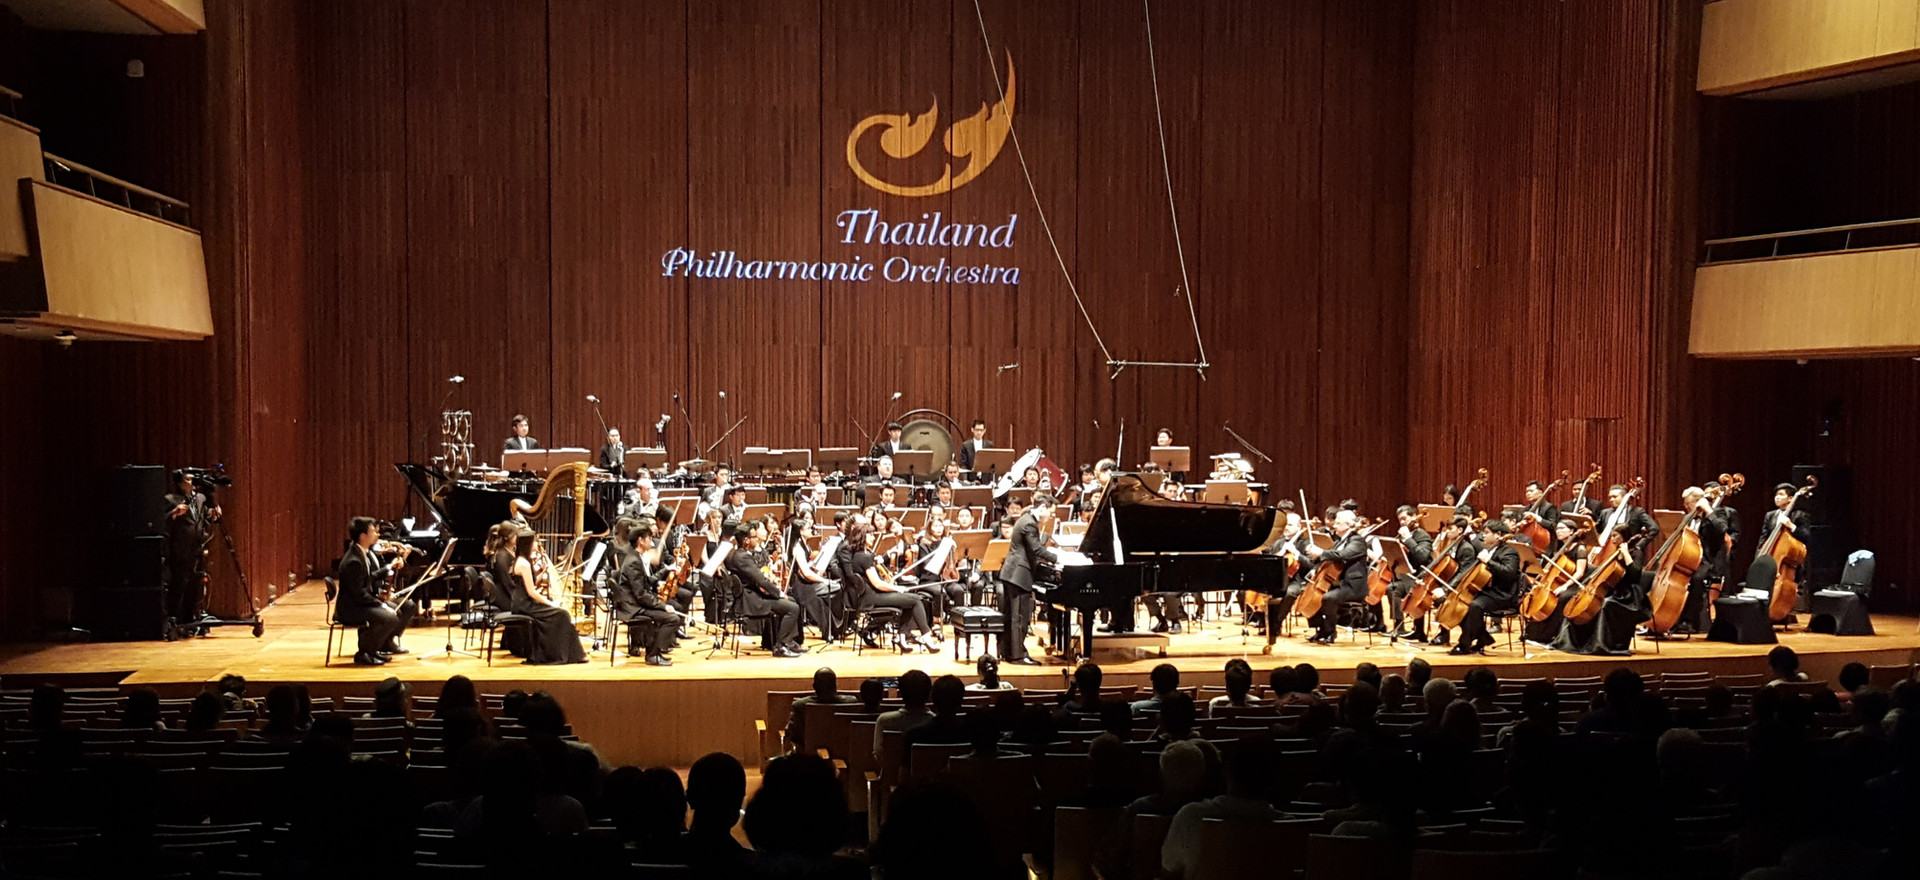 Thailand Phil in Prince Mahidol Hall